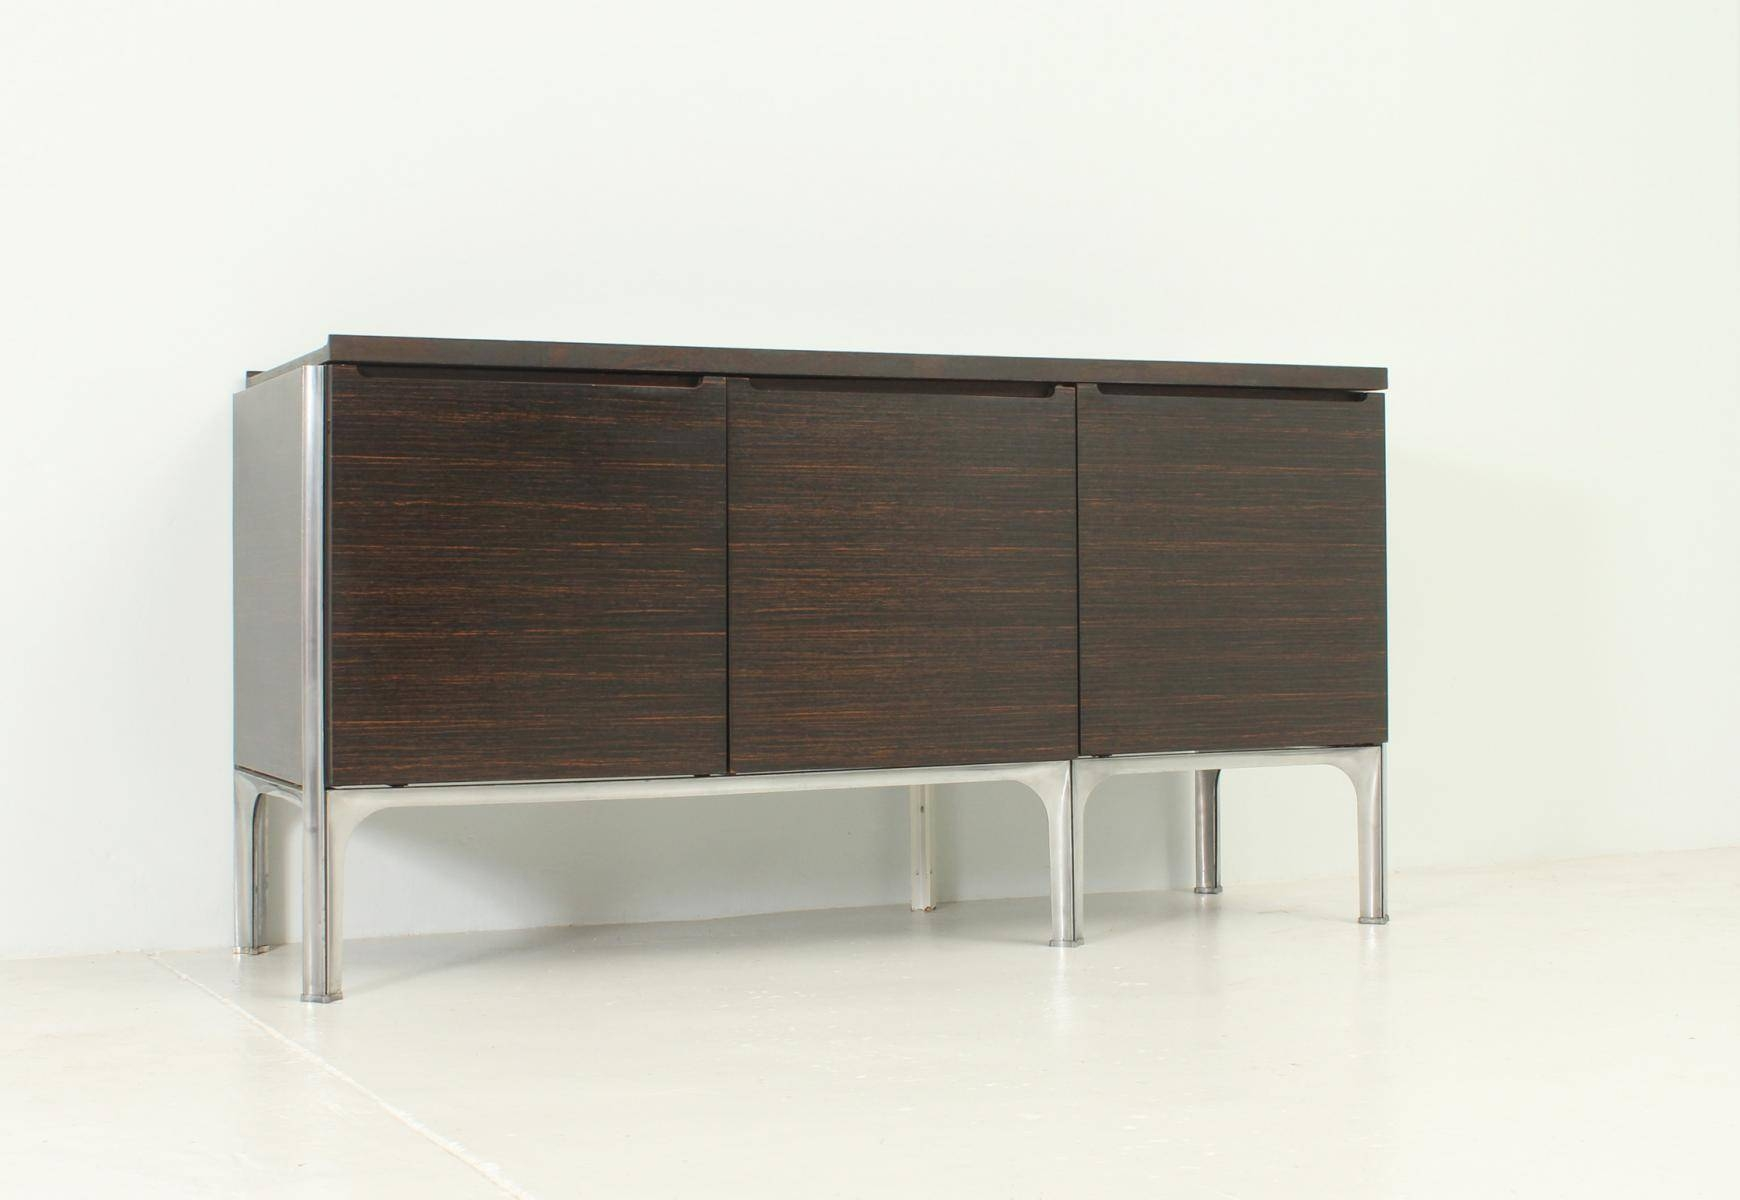 Macassar Ebony Wood Sideboardraymond Loewy For Df 2000 For Inside Newest Affinity Sideboards (#6 of 15)